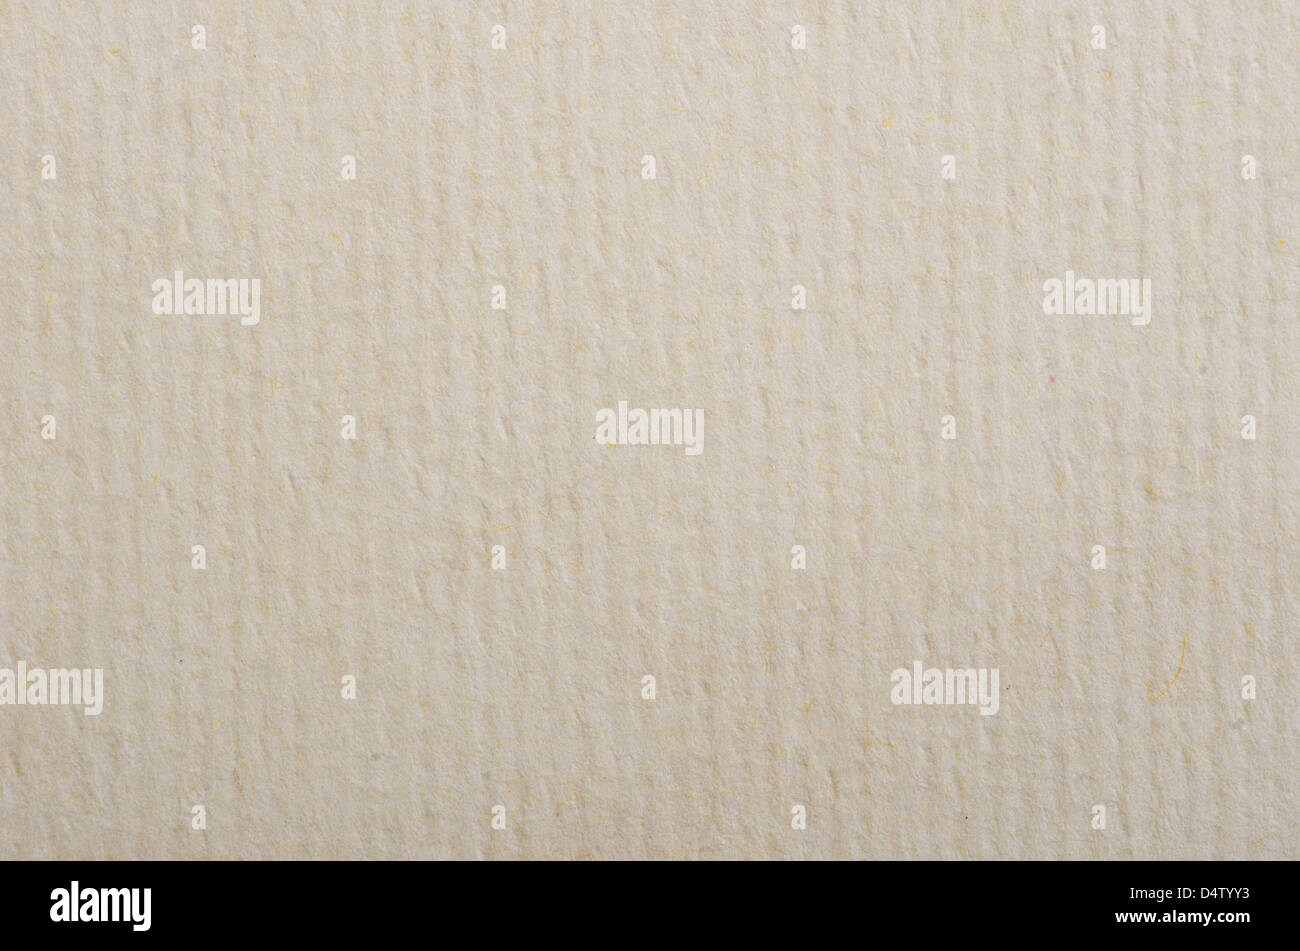 White paper texture and background - Stock Image